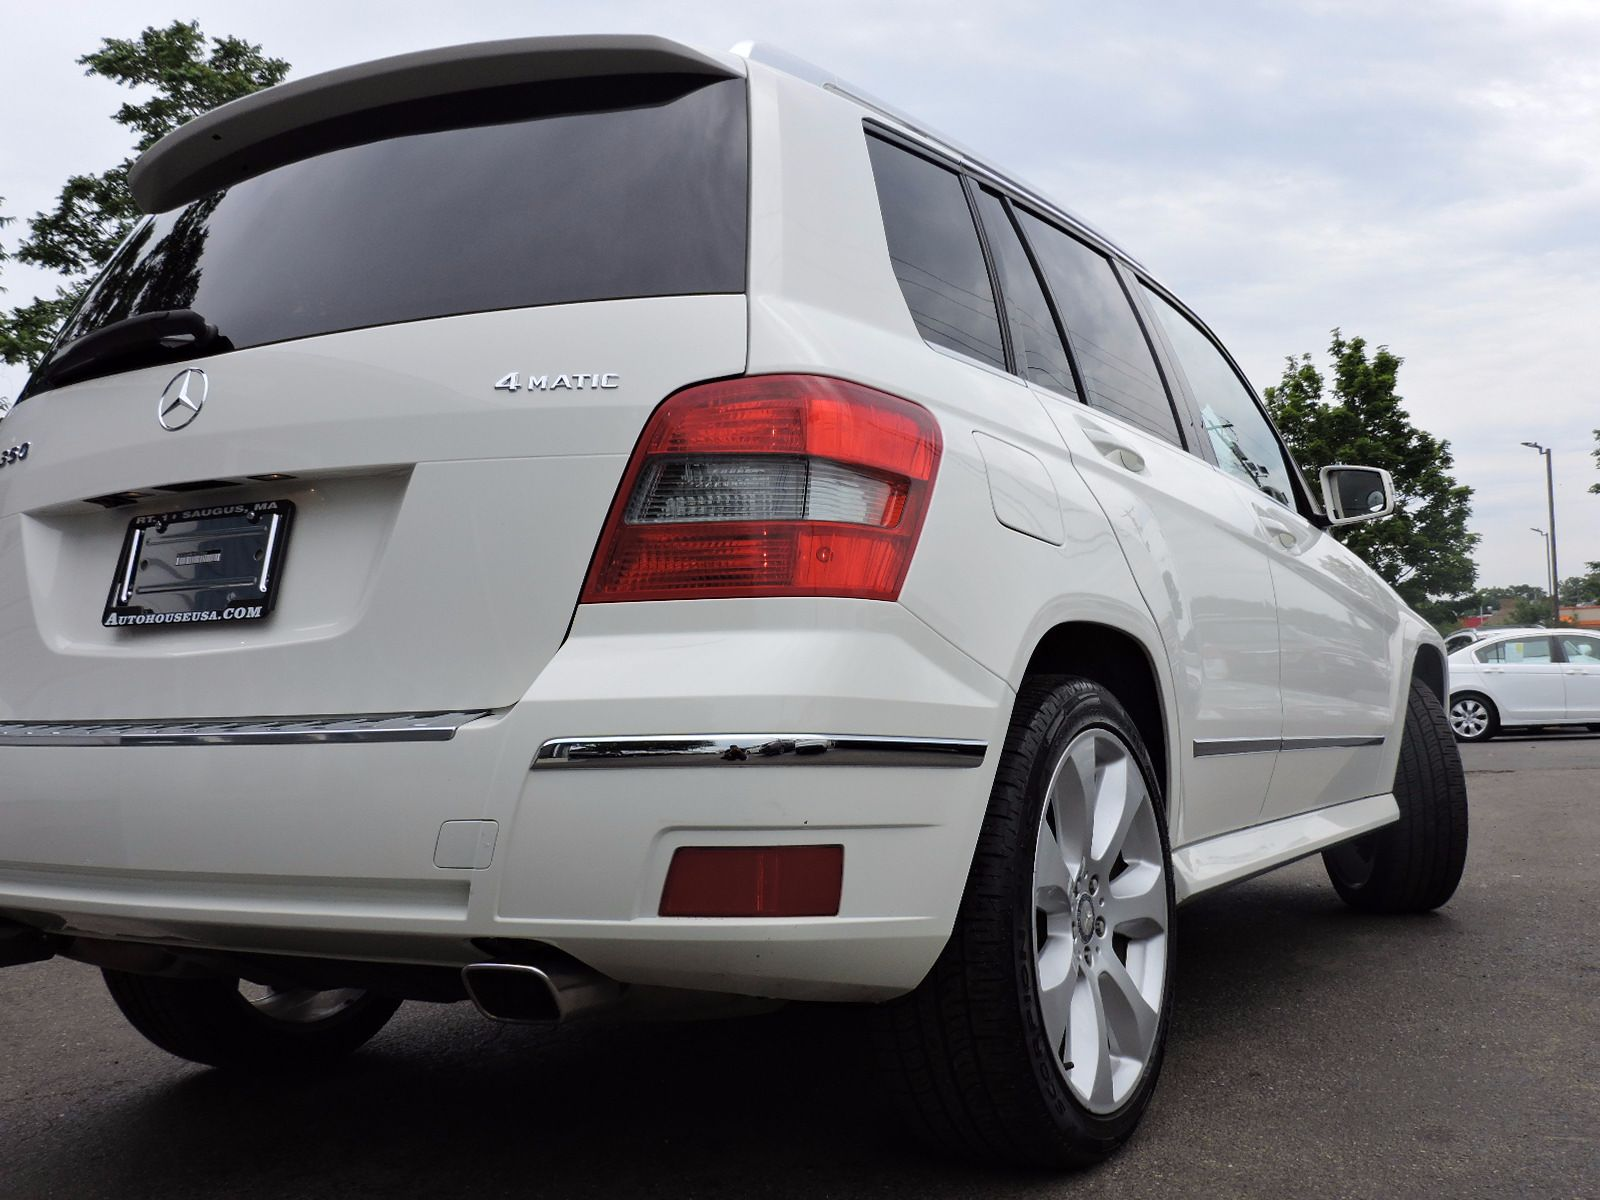 used 2010 mercedes benz glk class s wsunroof at saugus auto mall. Black Bedroom Furniture Sets. Home Design Ideas